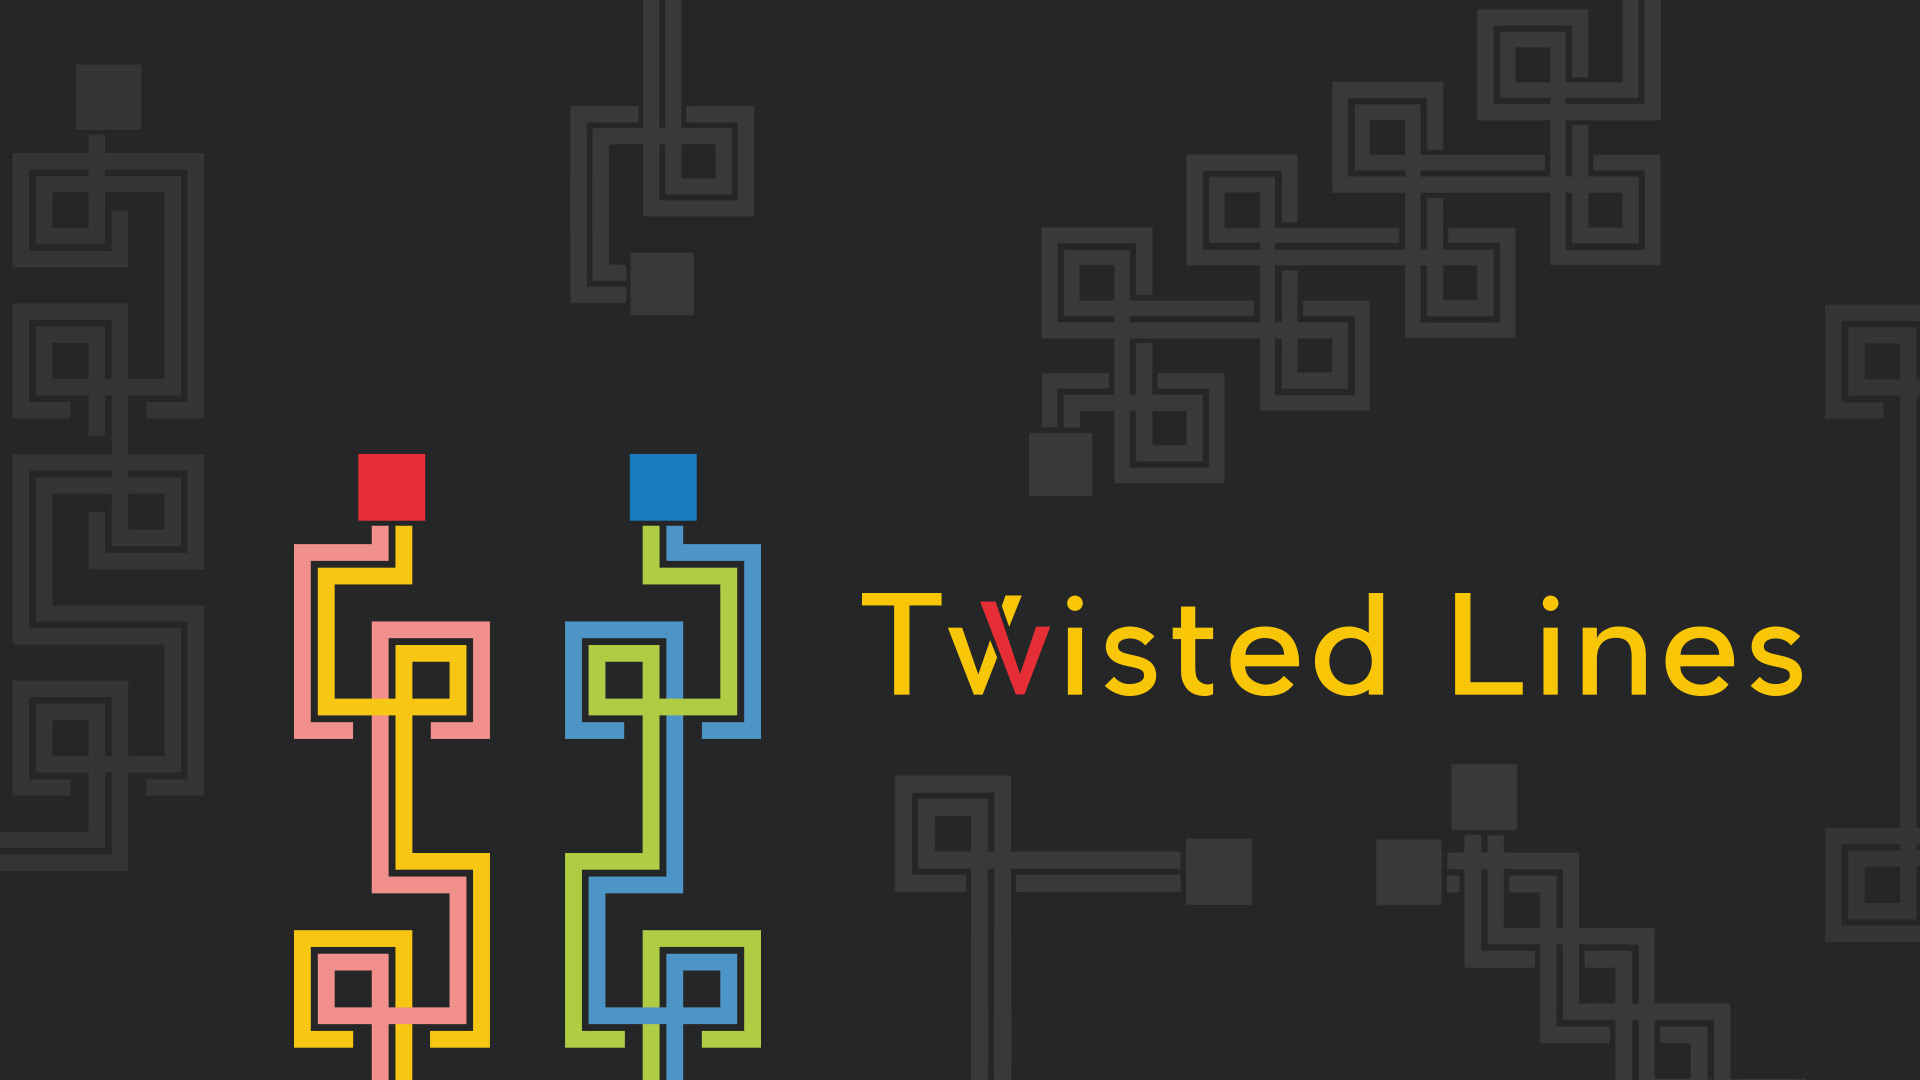 twisted_lines_banner_16-9.png